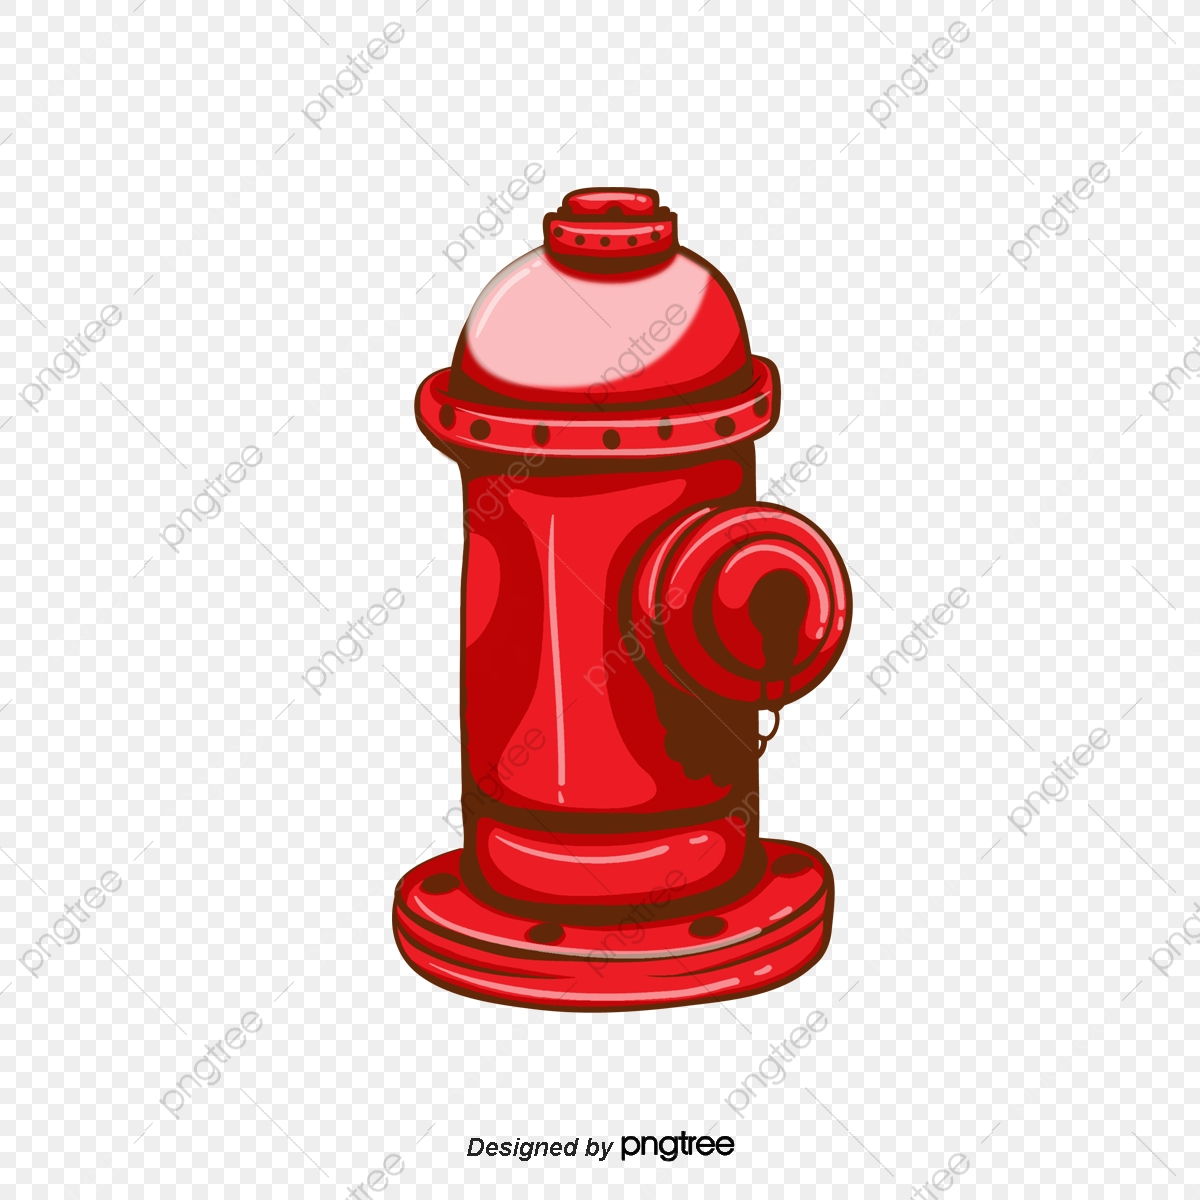 hight resolution of fire hydrant vector gratis png y vector